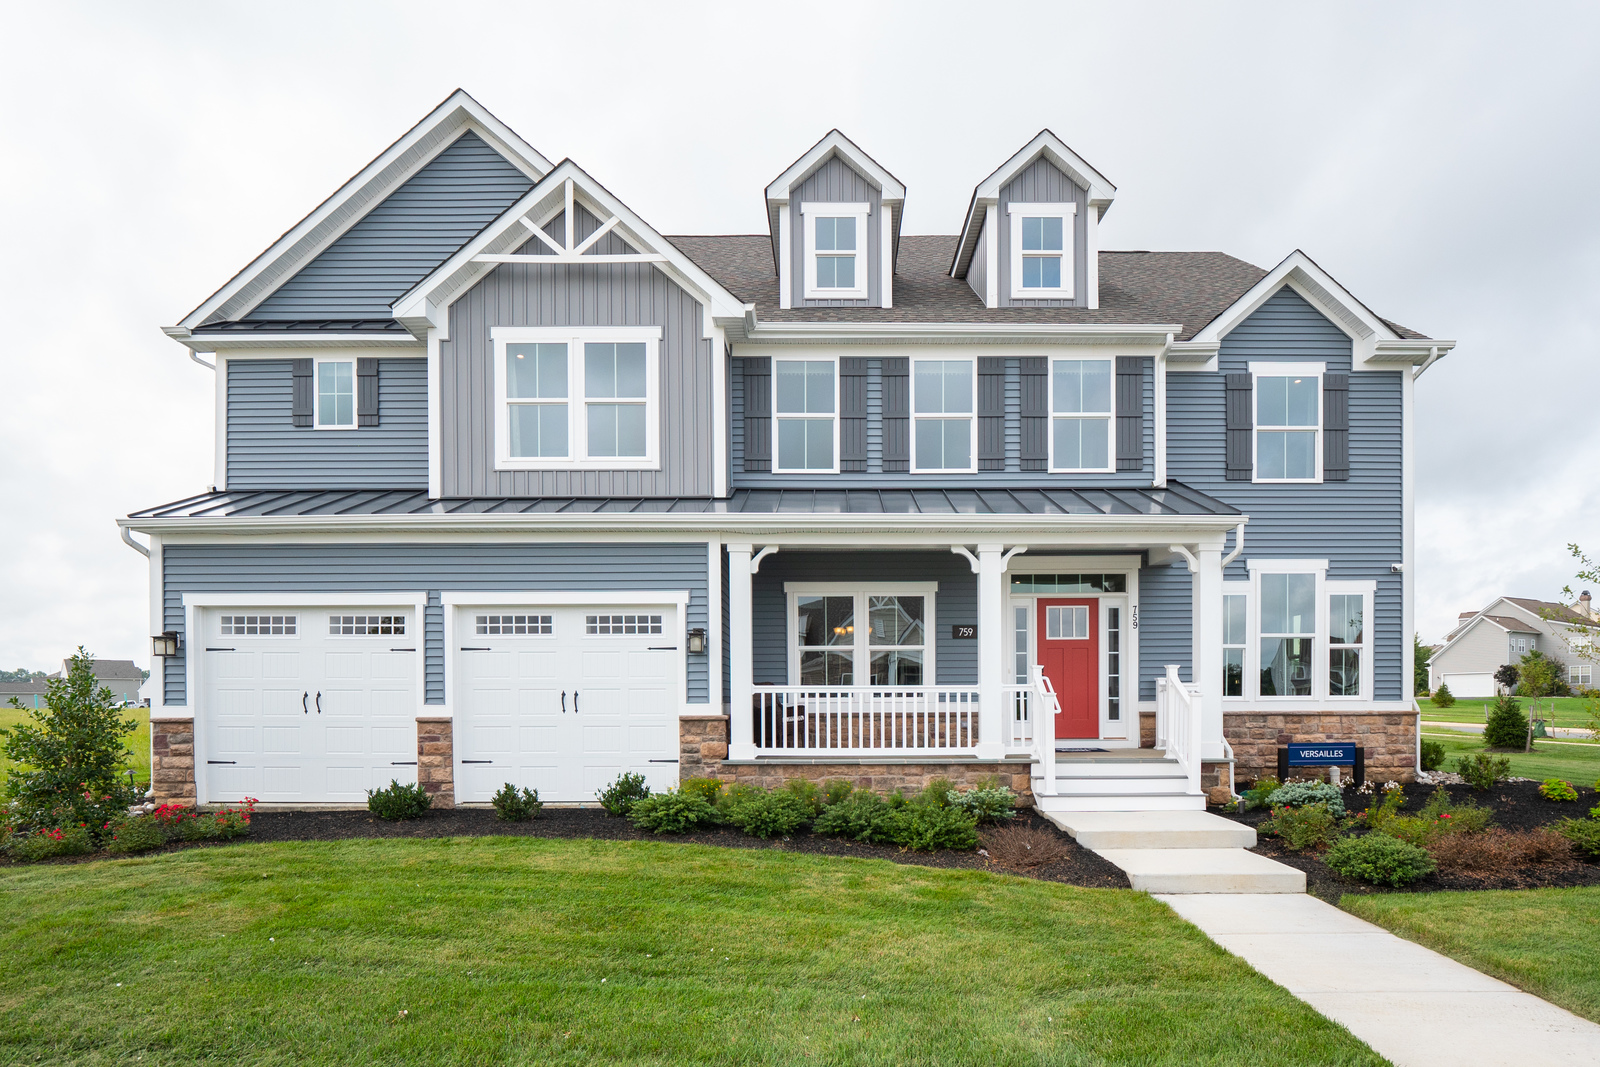 New Homes For Sale At Parkside In Middletown De Within The